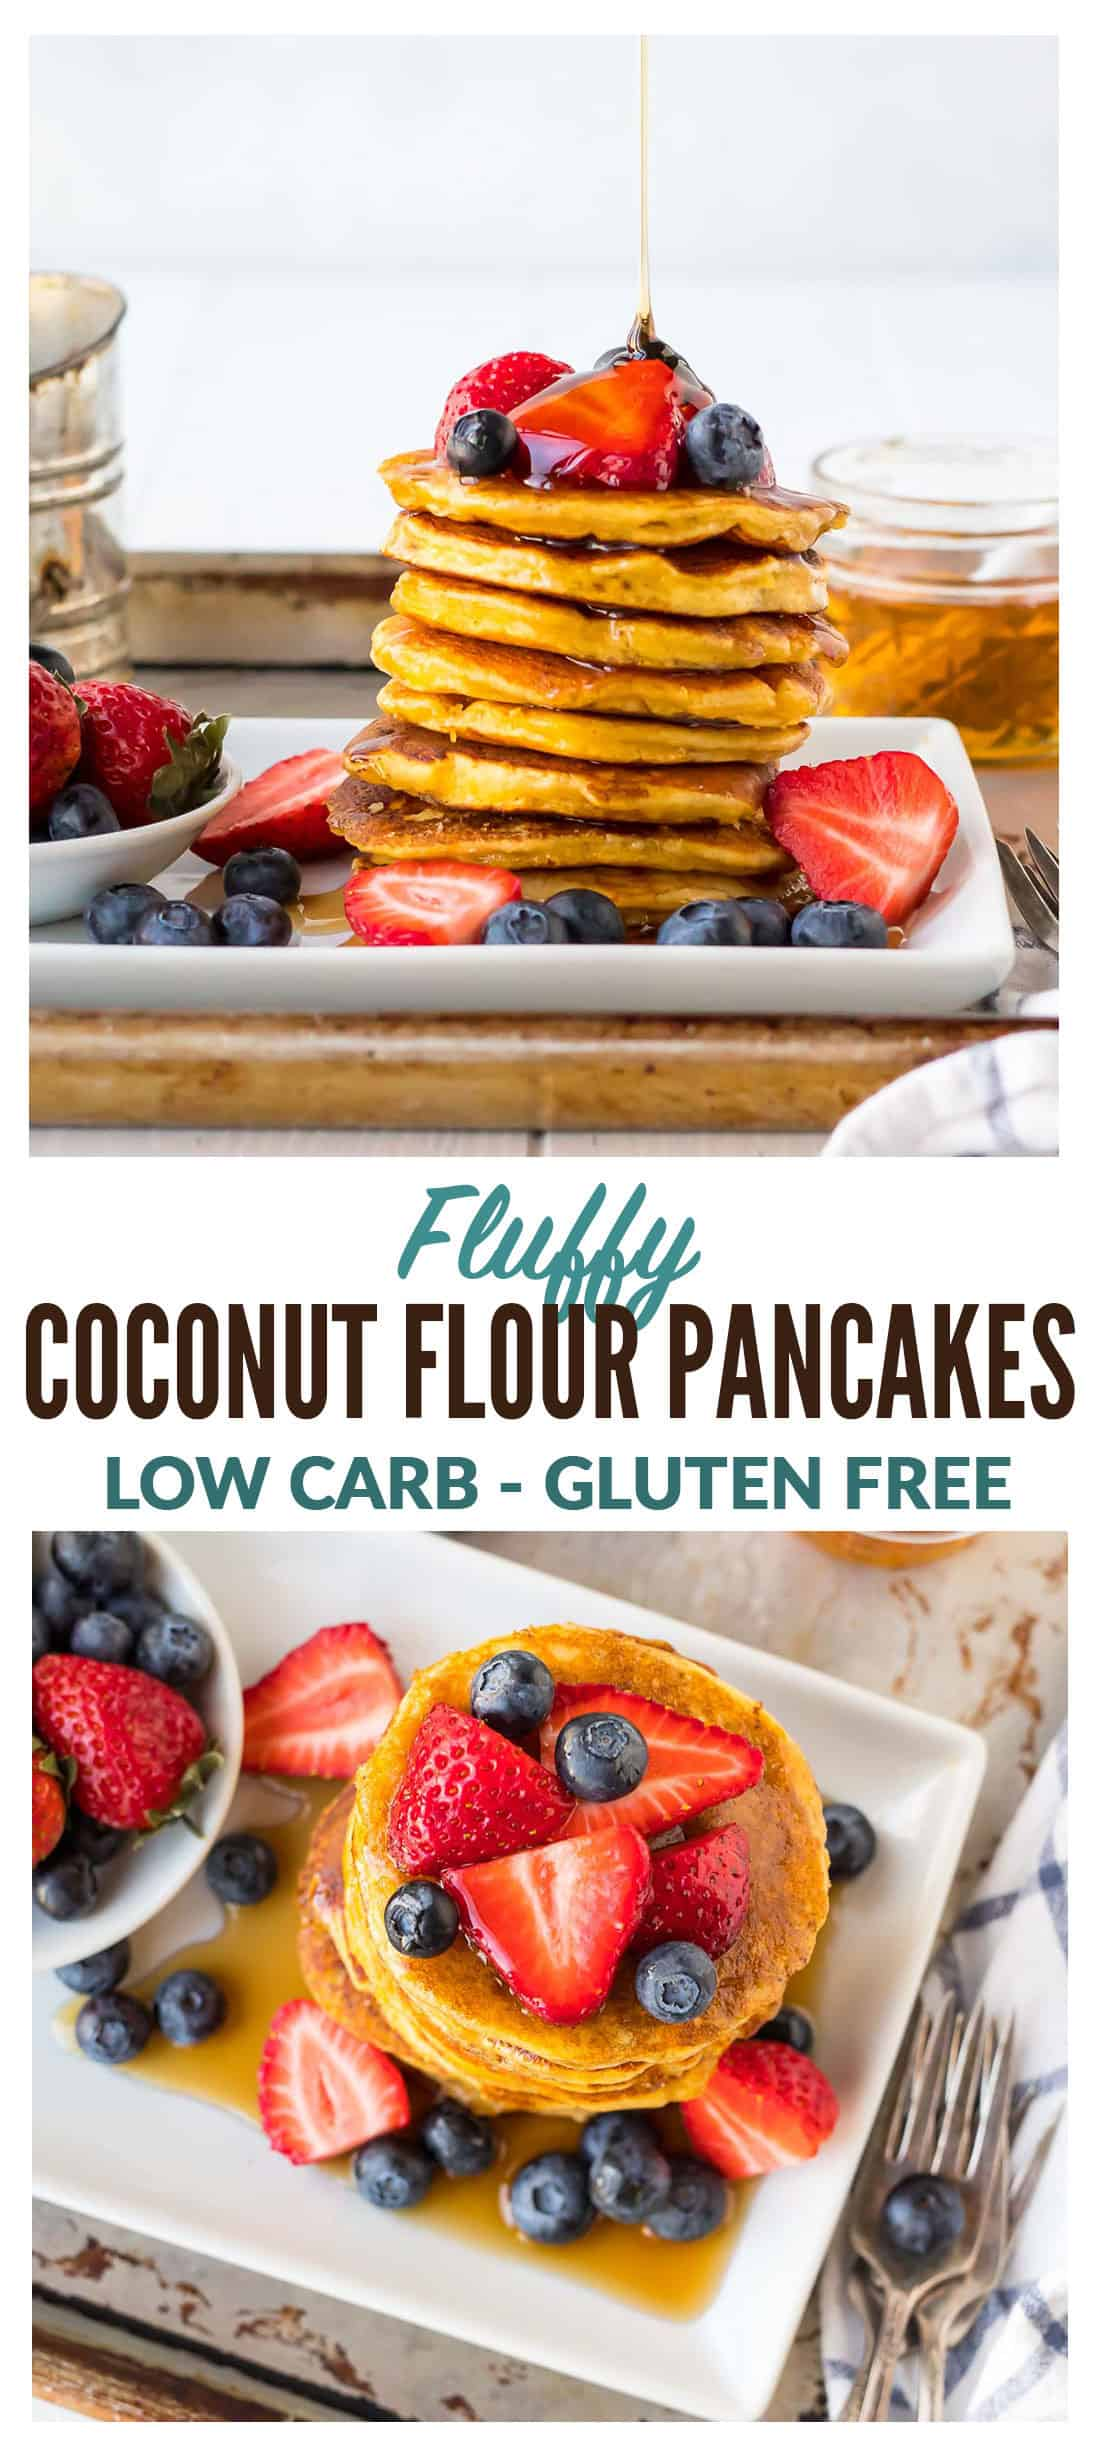 Fluffy low carb coconut flour pancakes! Light, tender pancakes made with coconut flour. High protein and easy to freeze for healthy breakfasts. Add banana, lemon, or any of your favorite toppings! Gluten free, paleo-friendly, grain free. #lowcarb #coconutflourpancakes #healthy #coconutflour